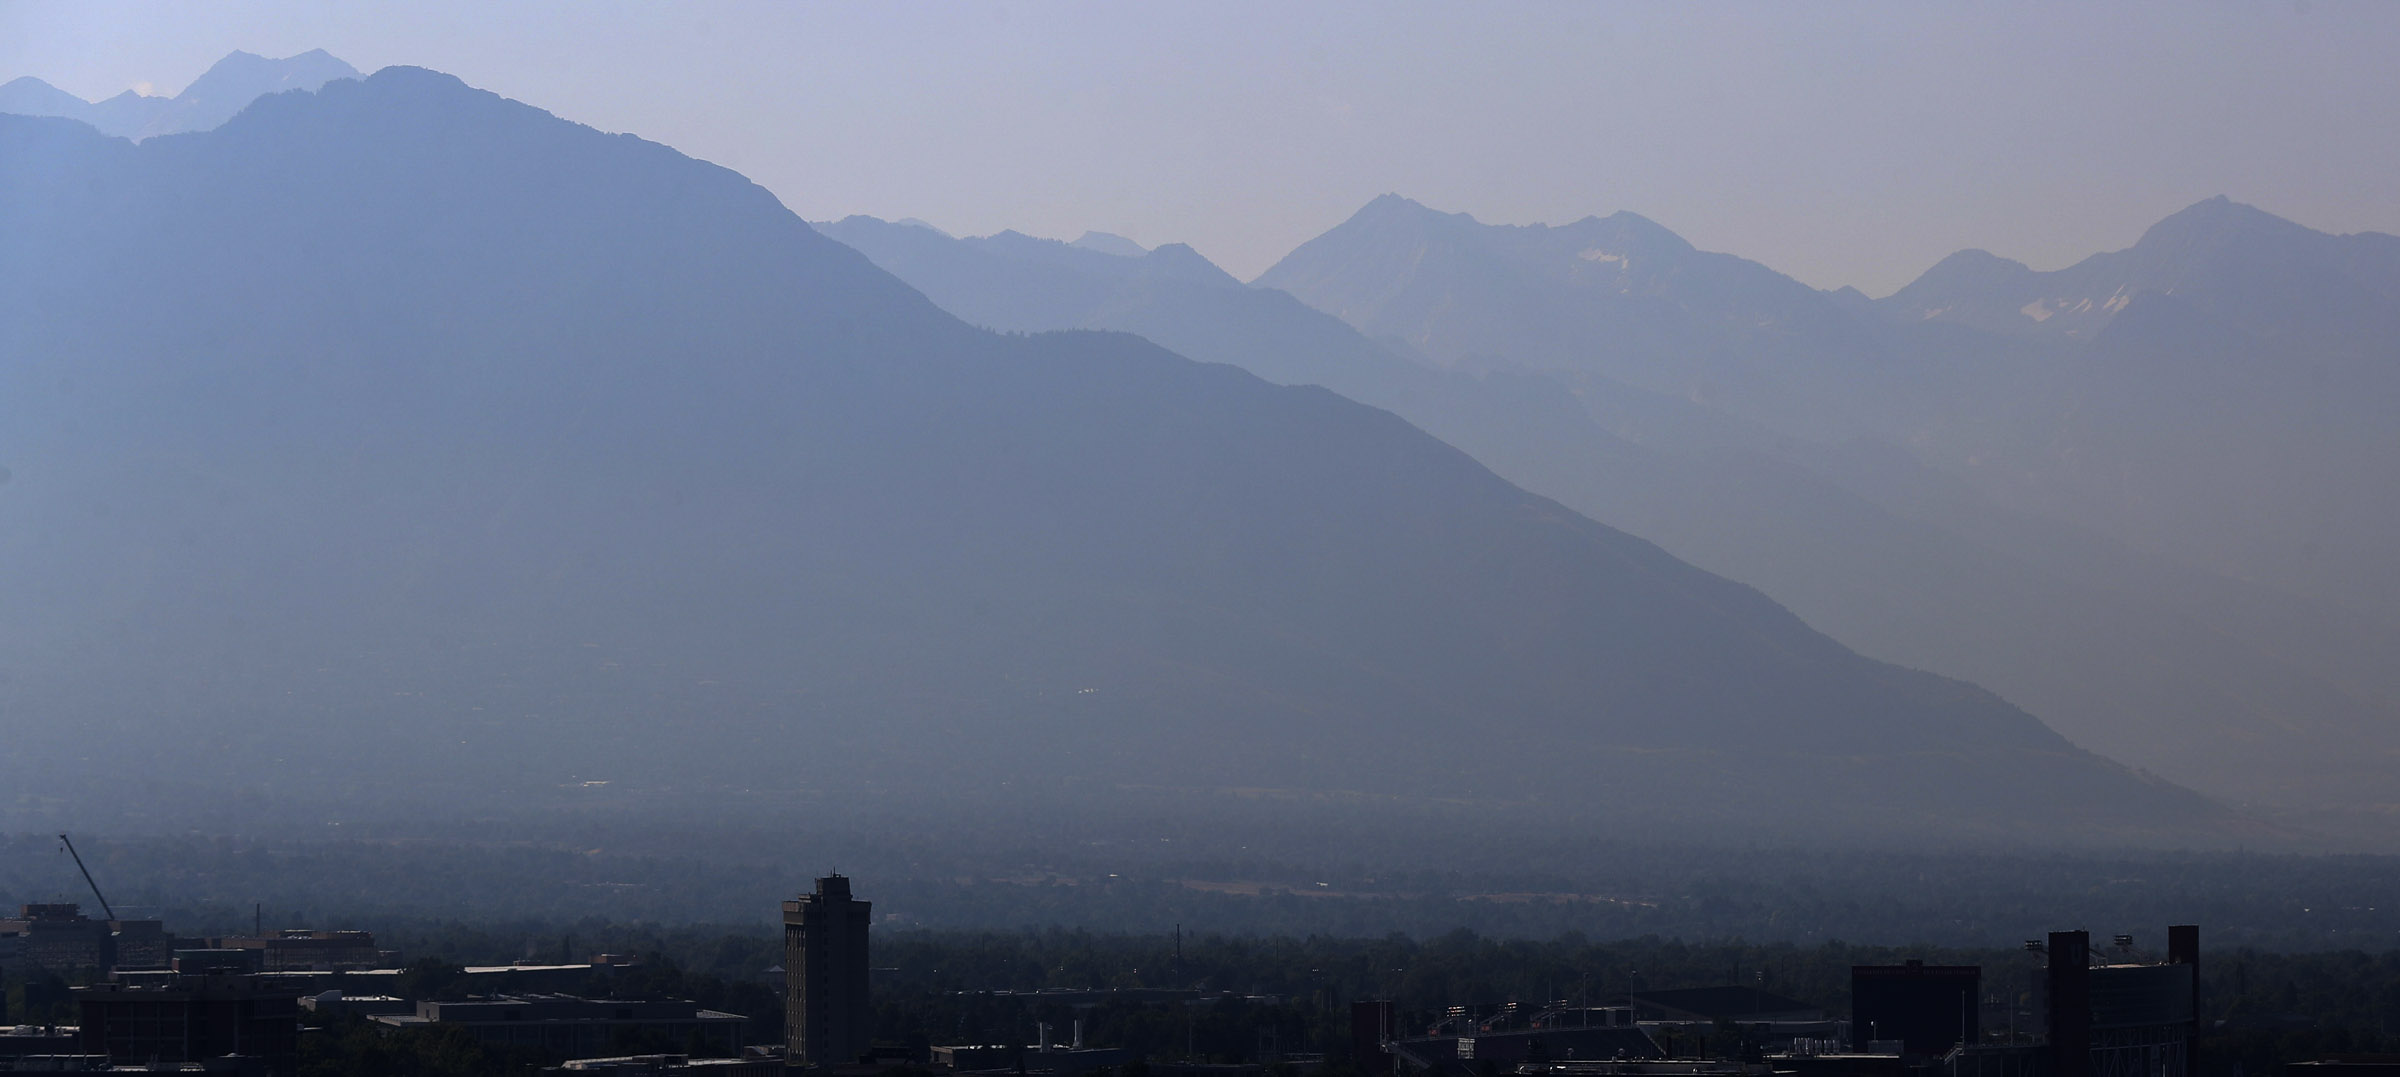 Hazy air due to wildfires in the West hangs over Salt Lake City on Monday, Sept. 9, 2019.